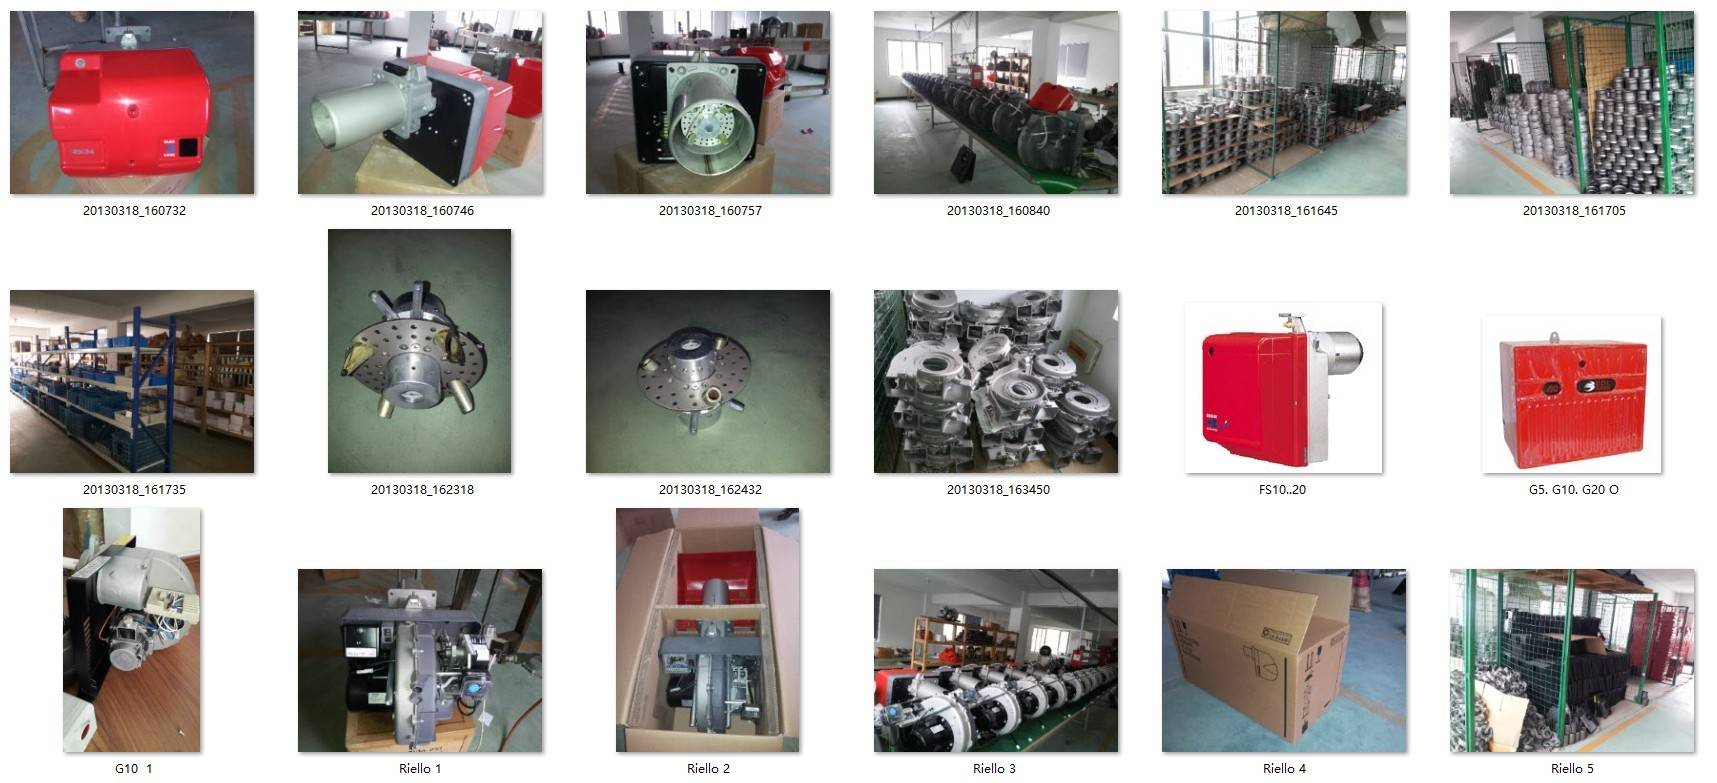 Selling Riello Burner and Burner Spare Parts from China Company